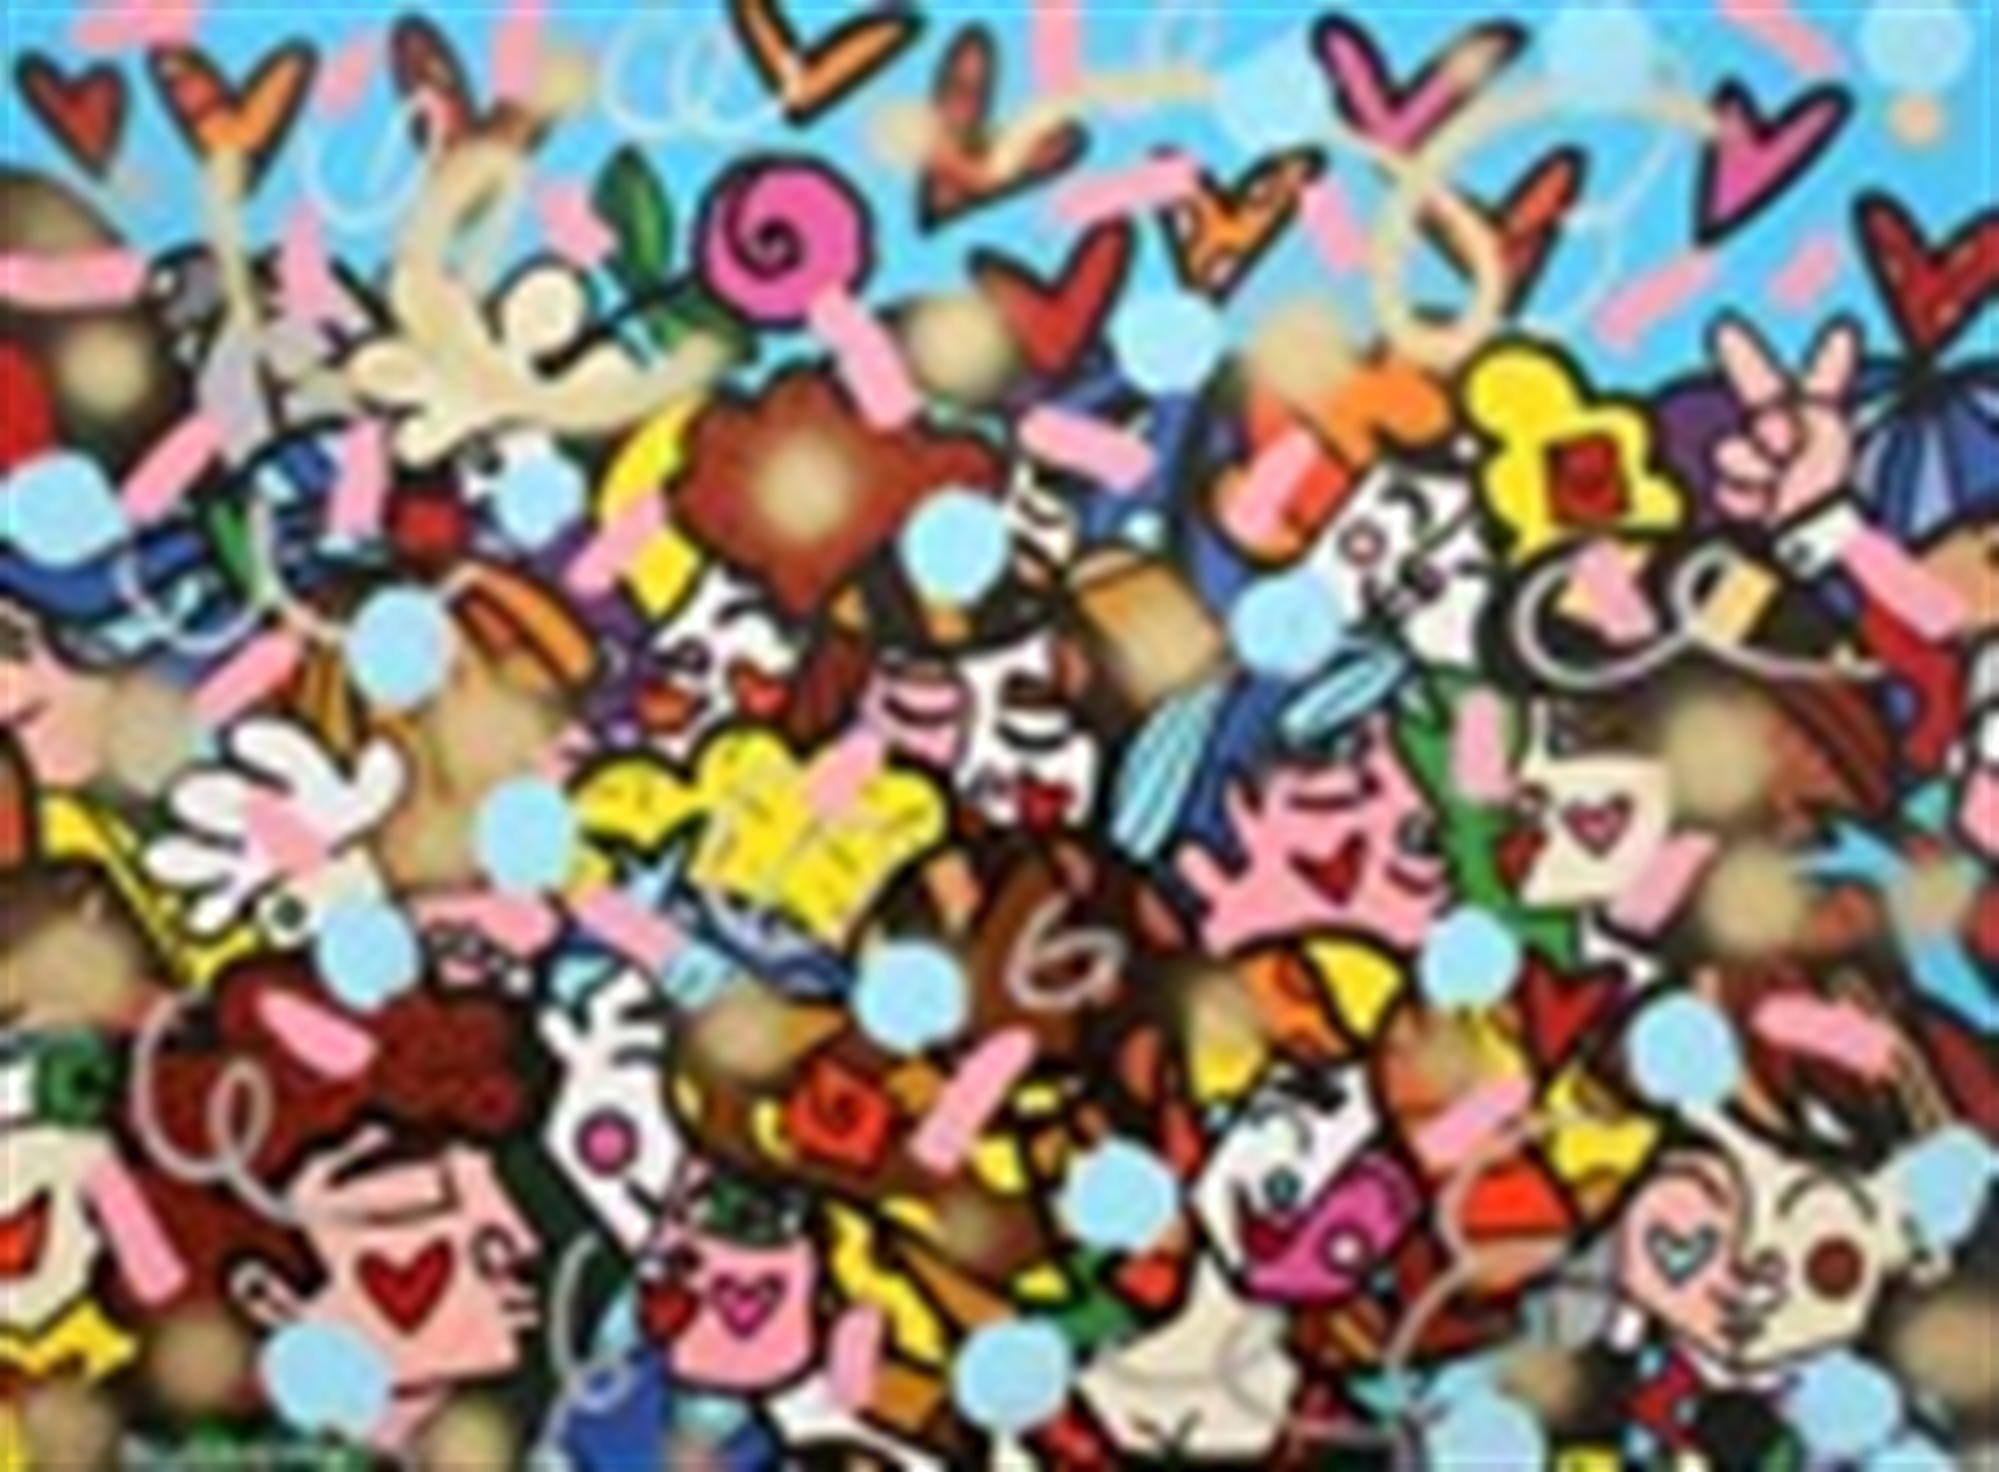 EVERYBODY by Romero Britto